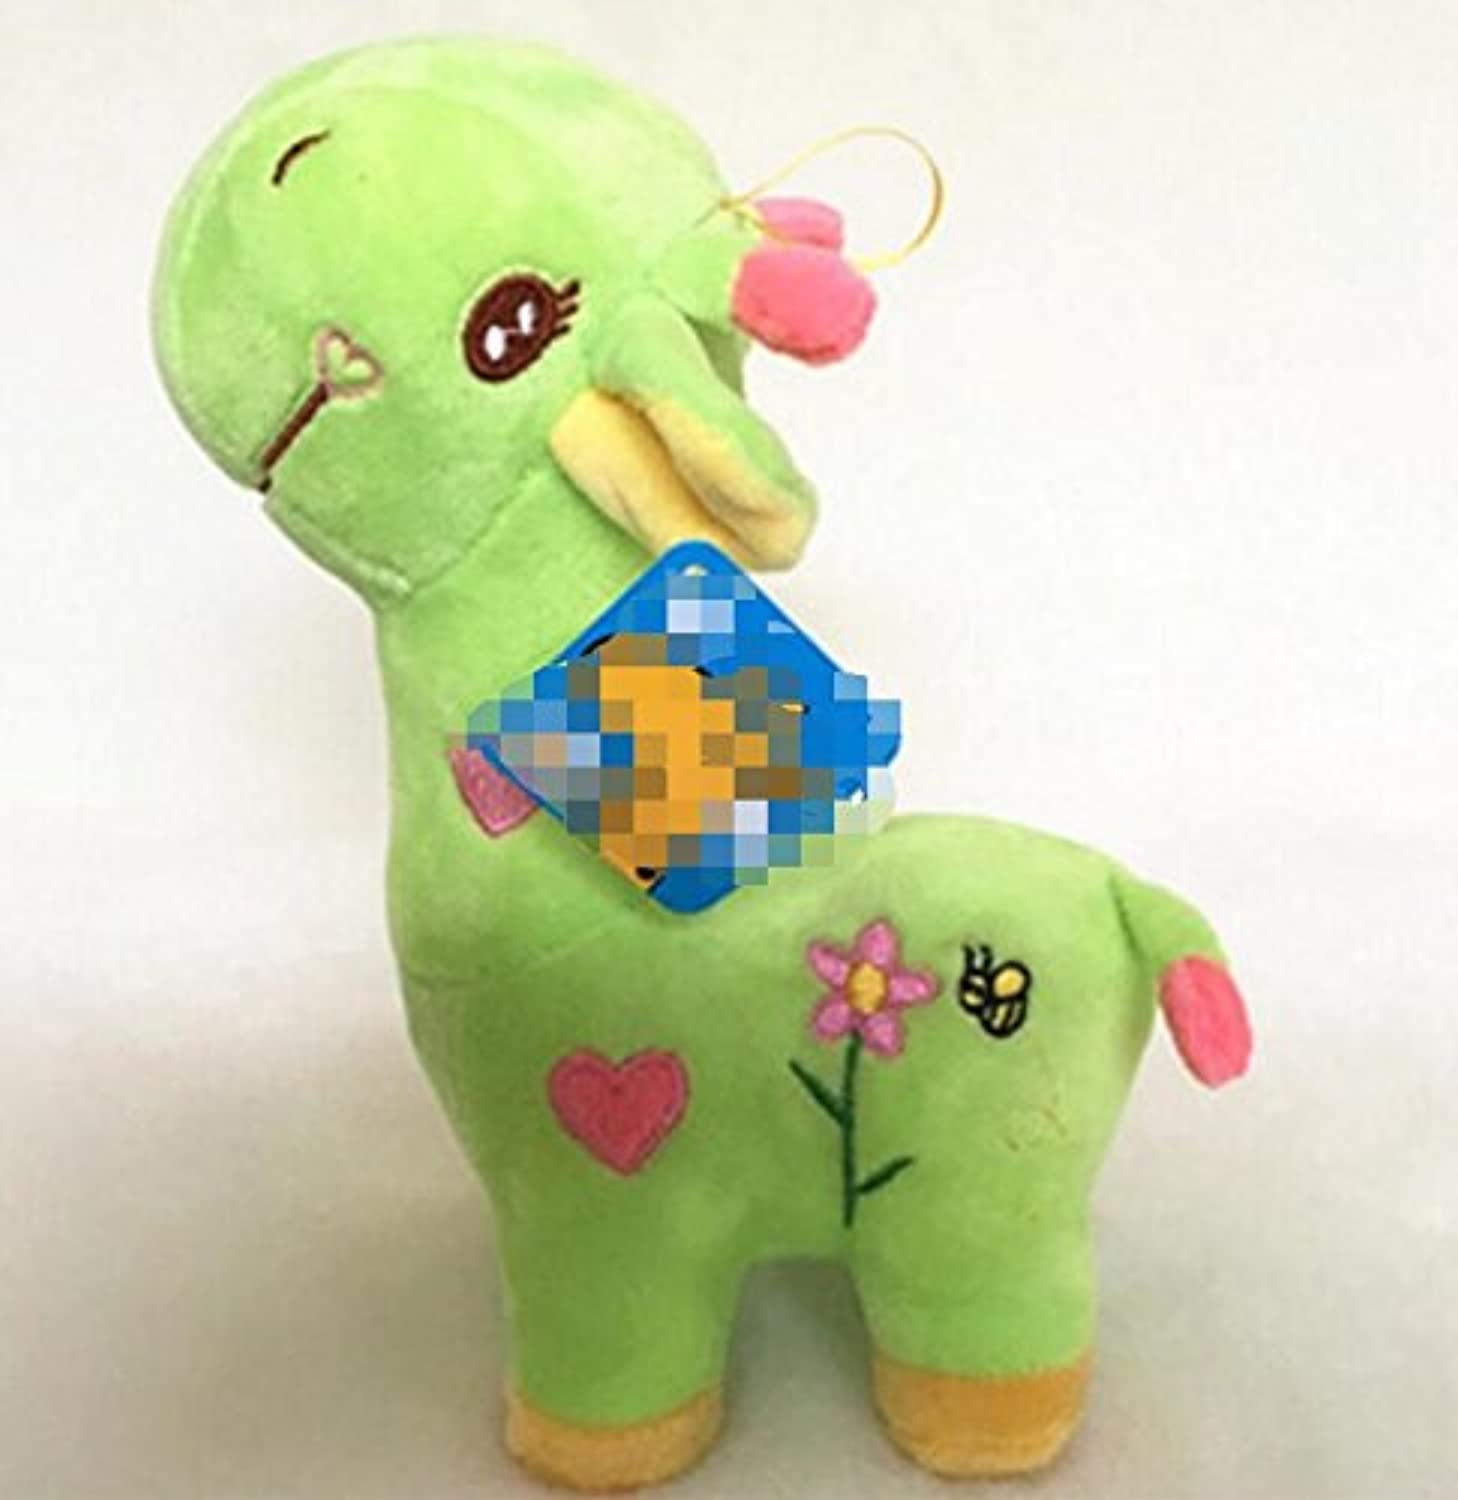 Baby Novelty Toy Cute 45cm Plush Soft Sika Deer Plush Toy Baby Playing Toy Home Decorations(Green)